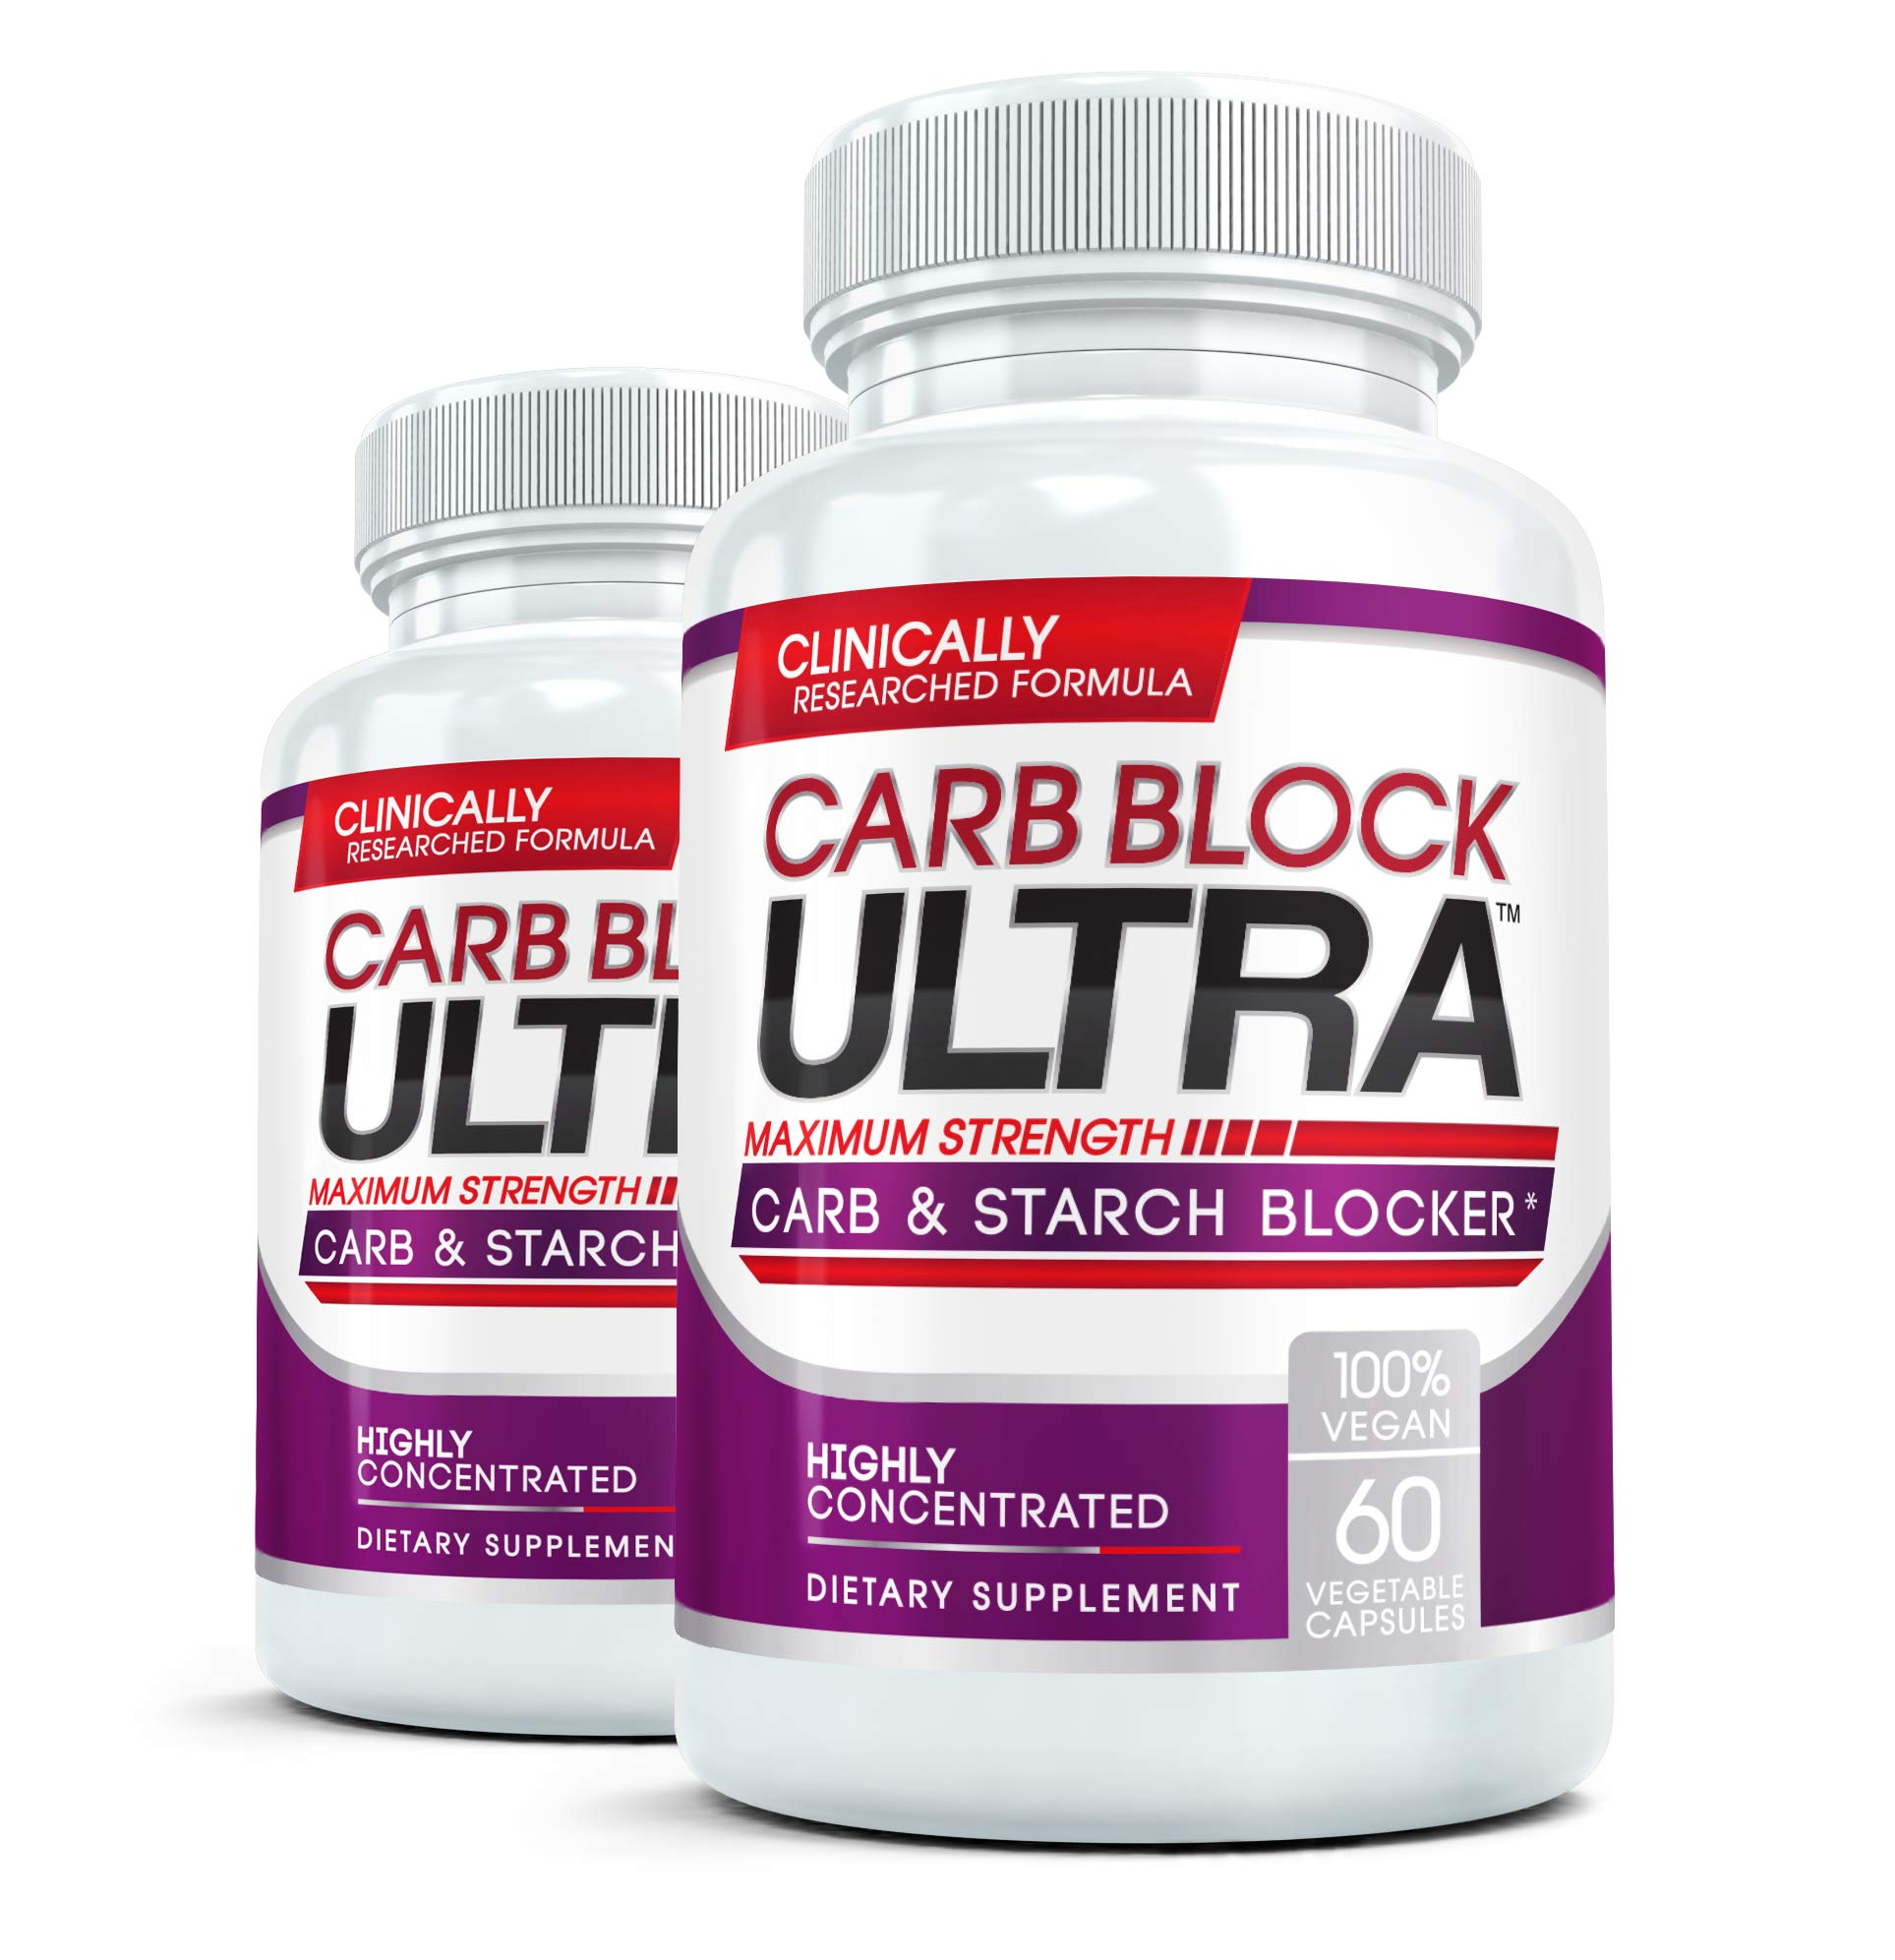 CARB BLOCK ULTRA (2 Bottles) Clinical Strength Carbohydrate & Starch Blocker Supplement with White Kidney Bean Extract - Lose Weight Without Dieting! 60 capsules per bottle by Carb Block Ultra